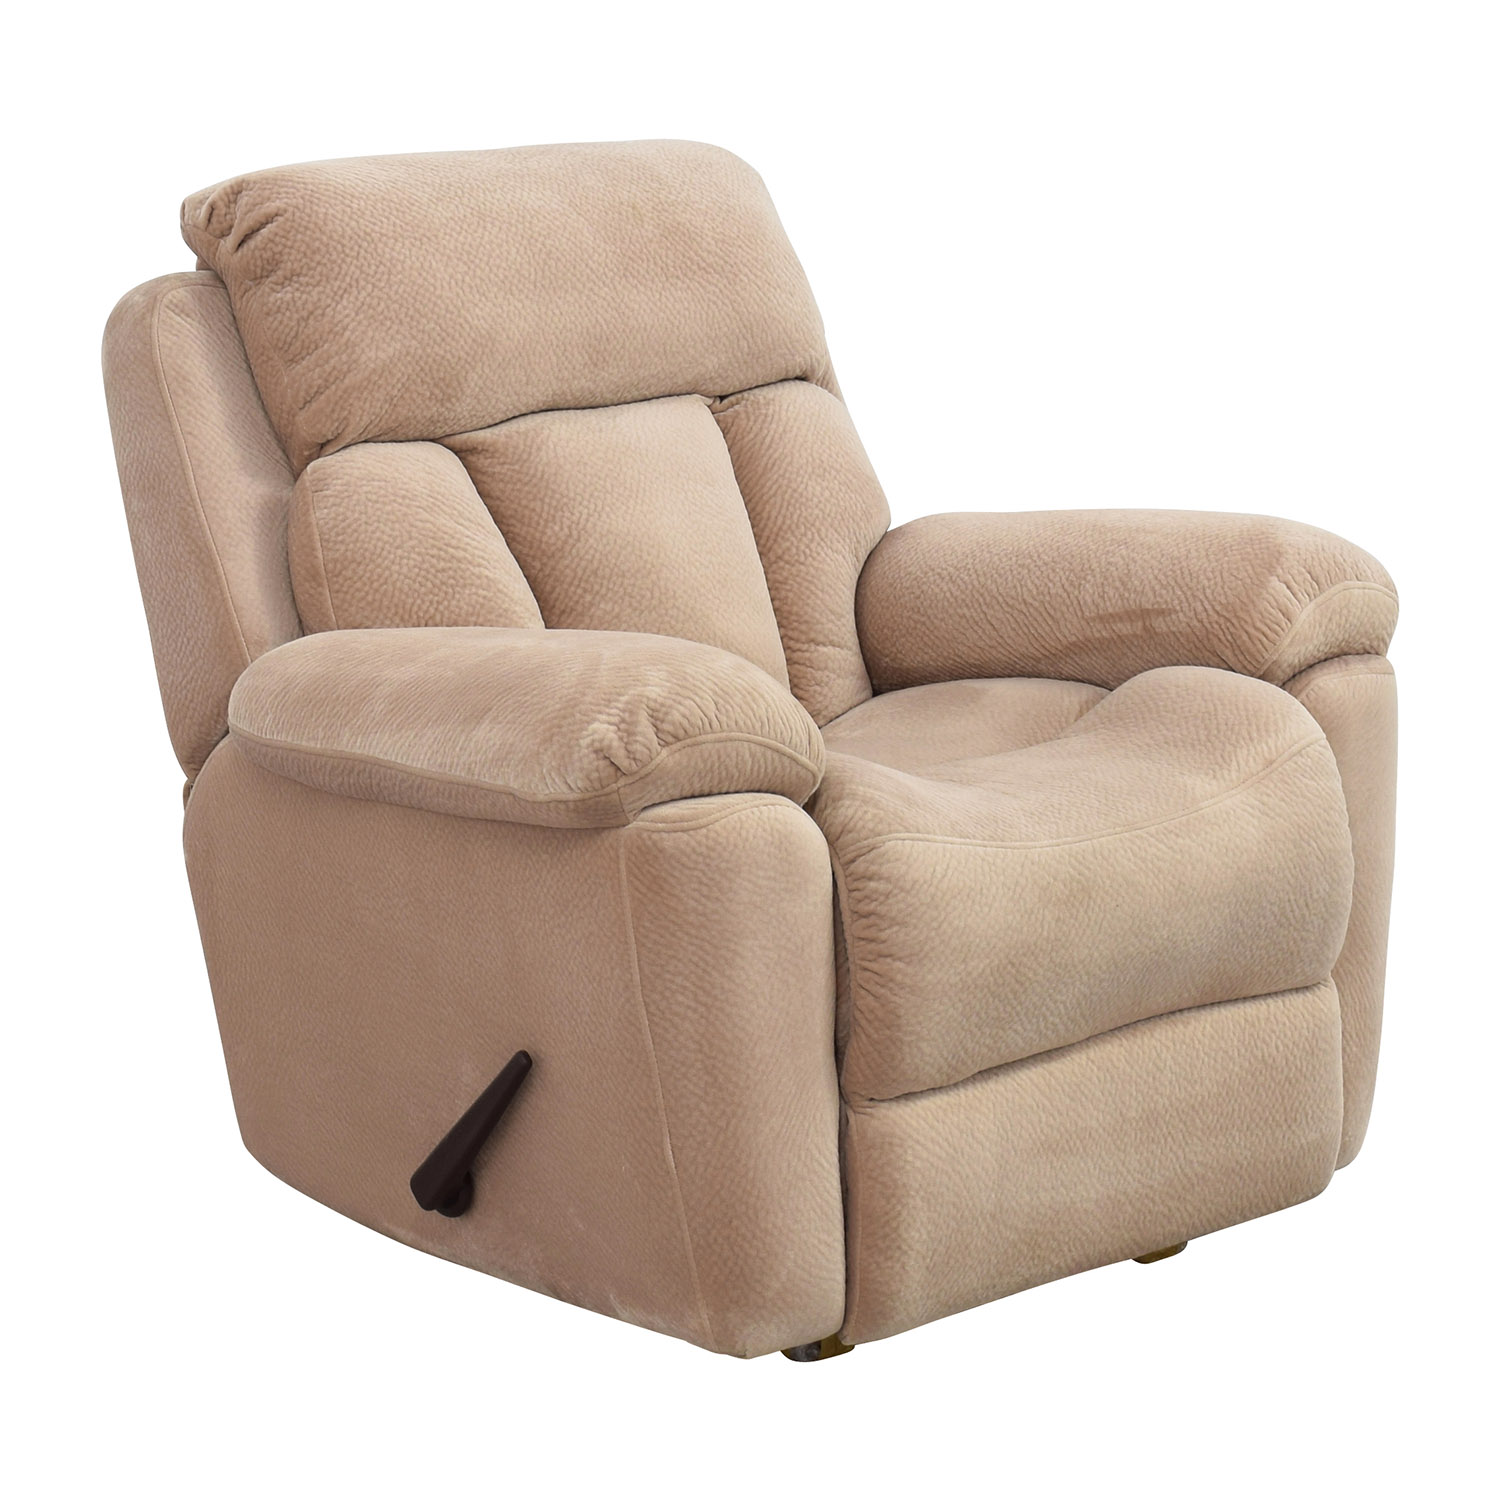 Second Recliner Chairs 28 Images 73 Furniture